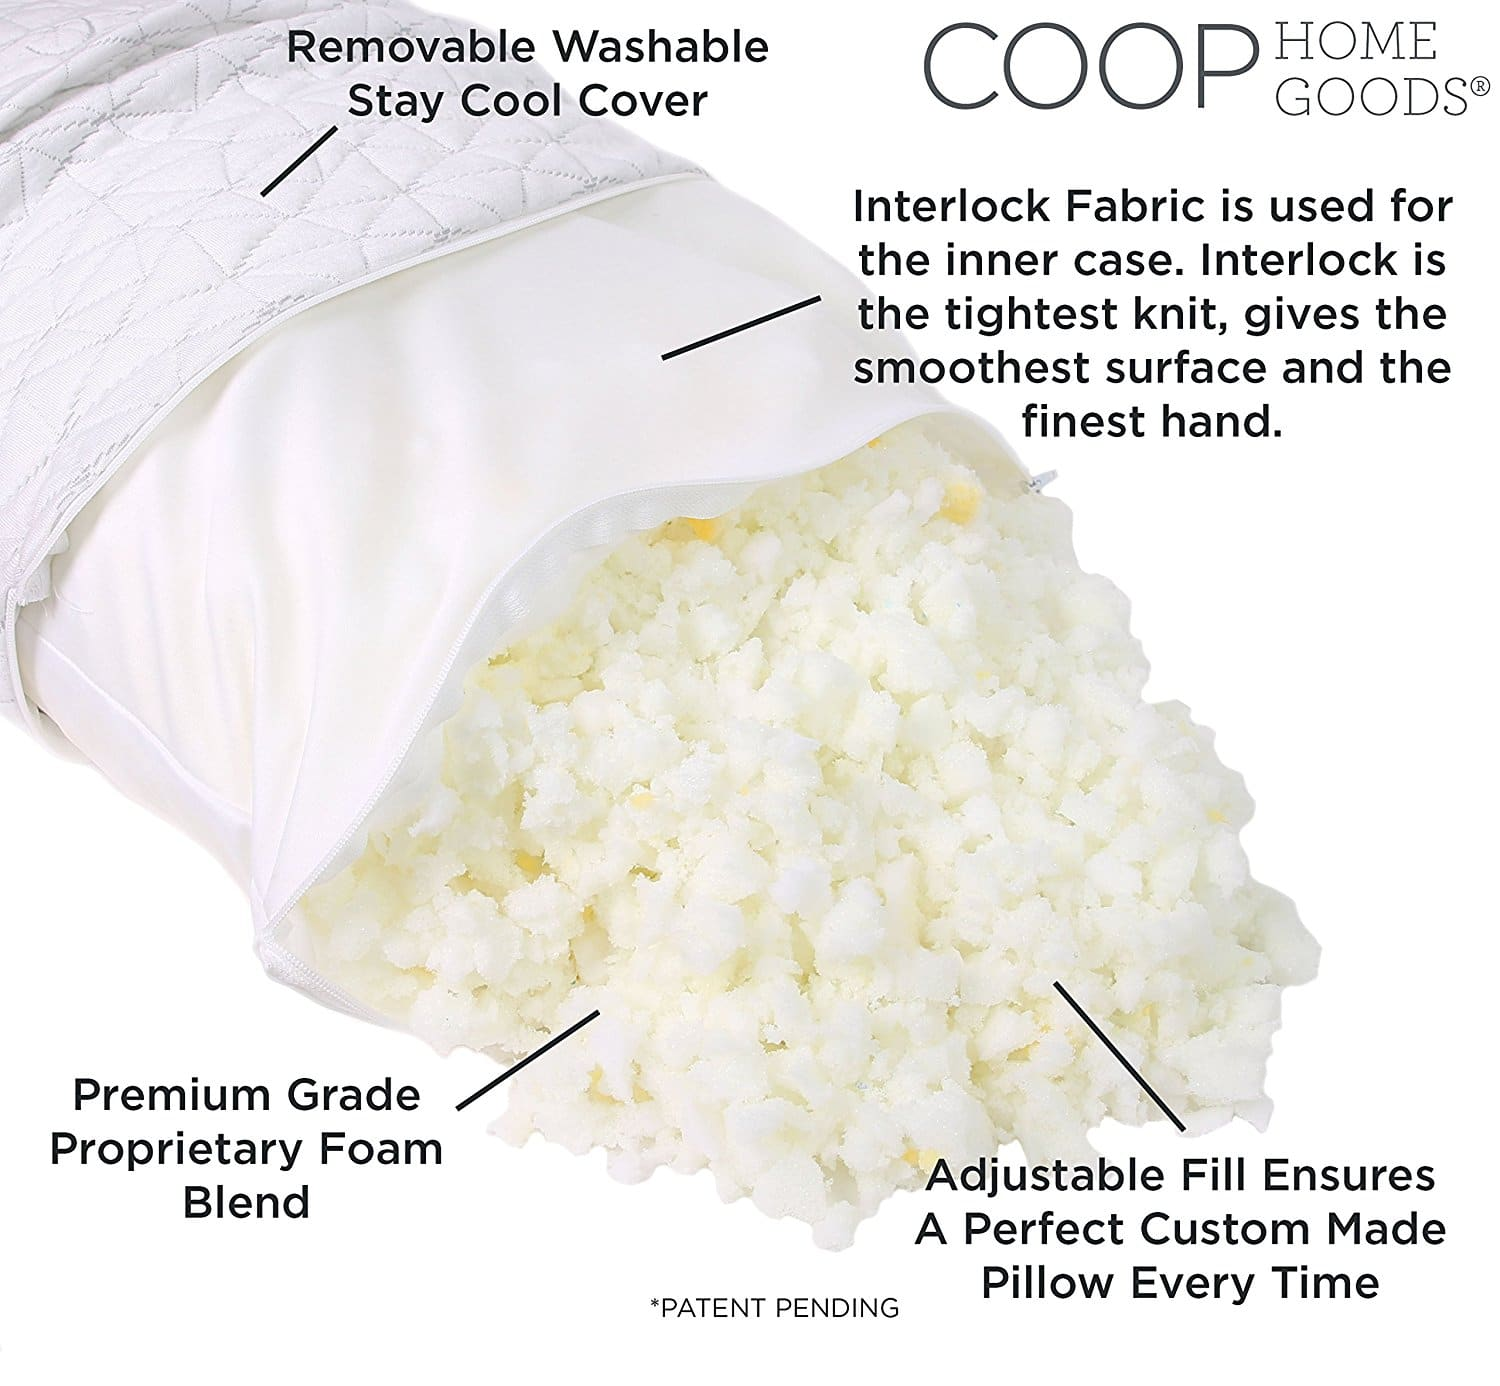 stomach sleeper pillow - Coop Home Goods Shredded Hypoallergenic